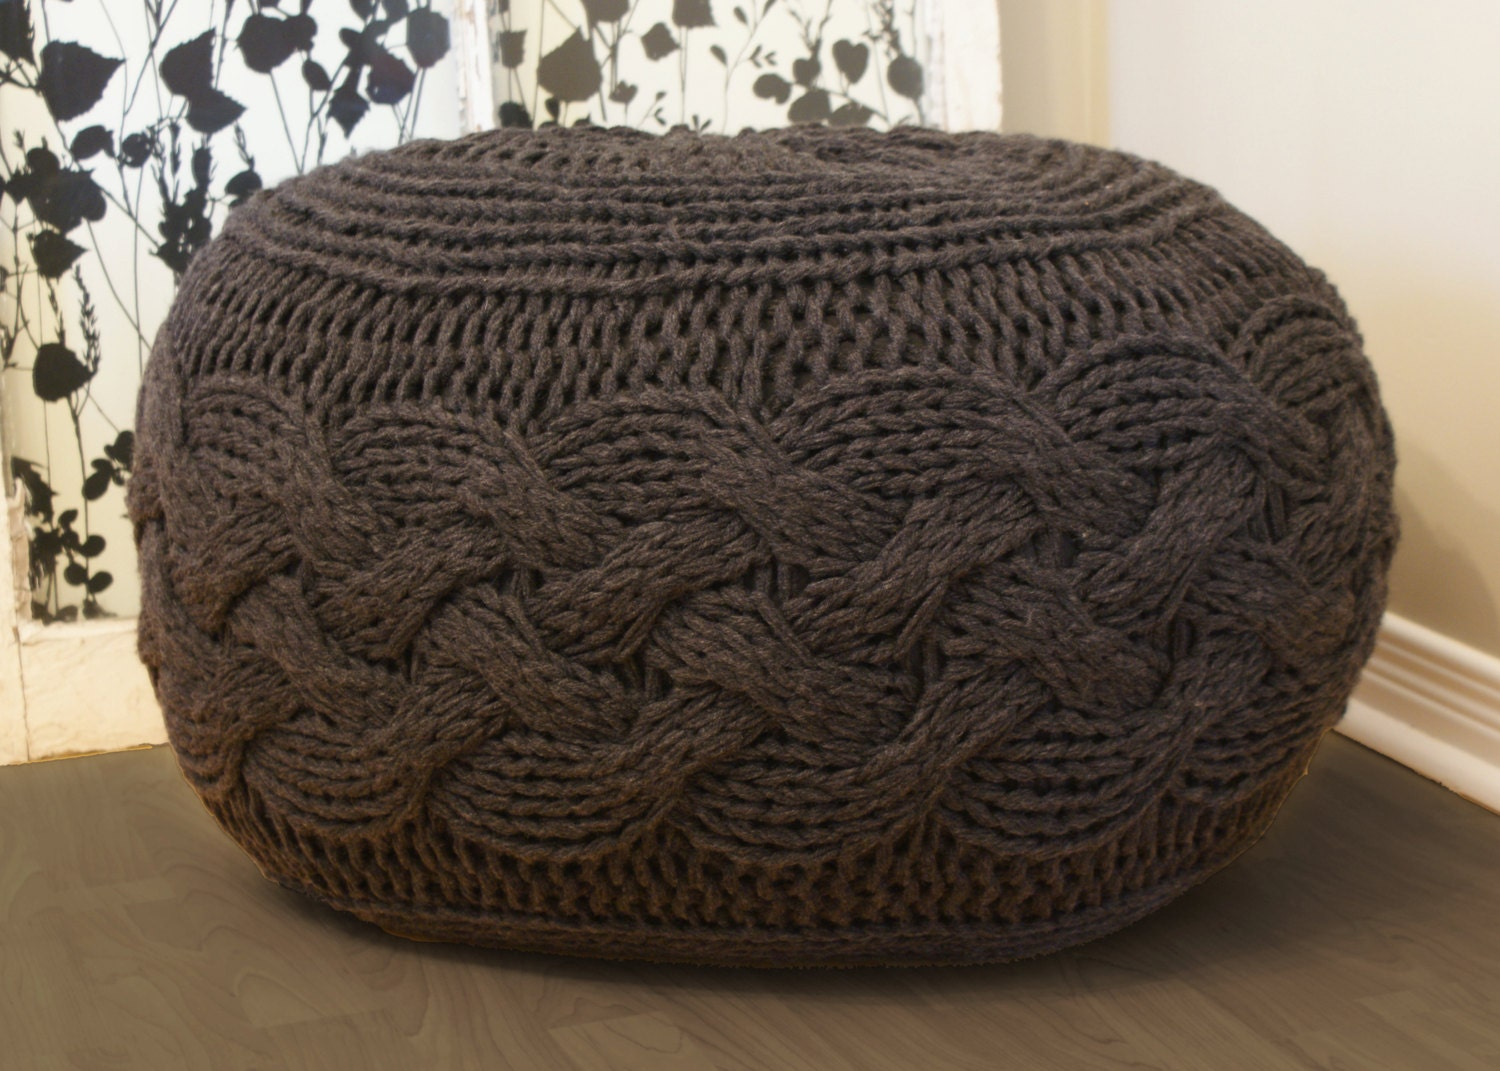 pouf intended footstool chunky house inside within for grey ottoman guide knitted pouffe knit patterns your